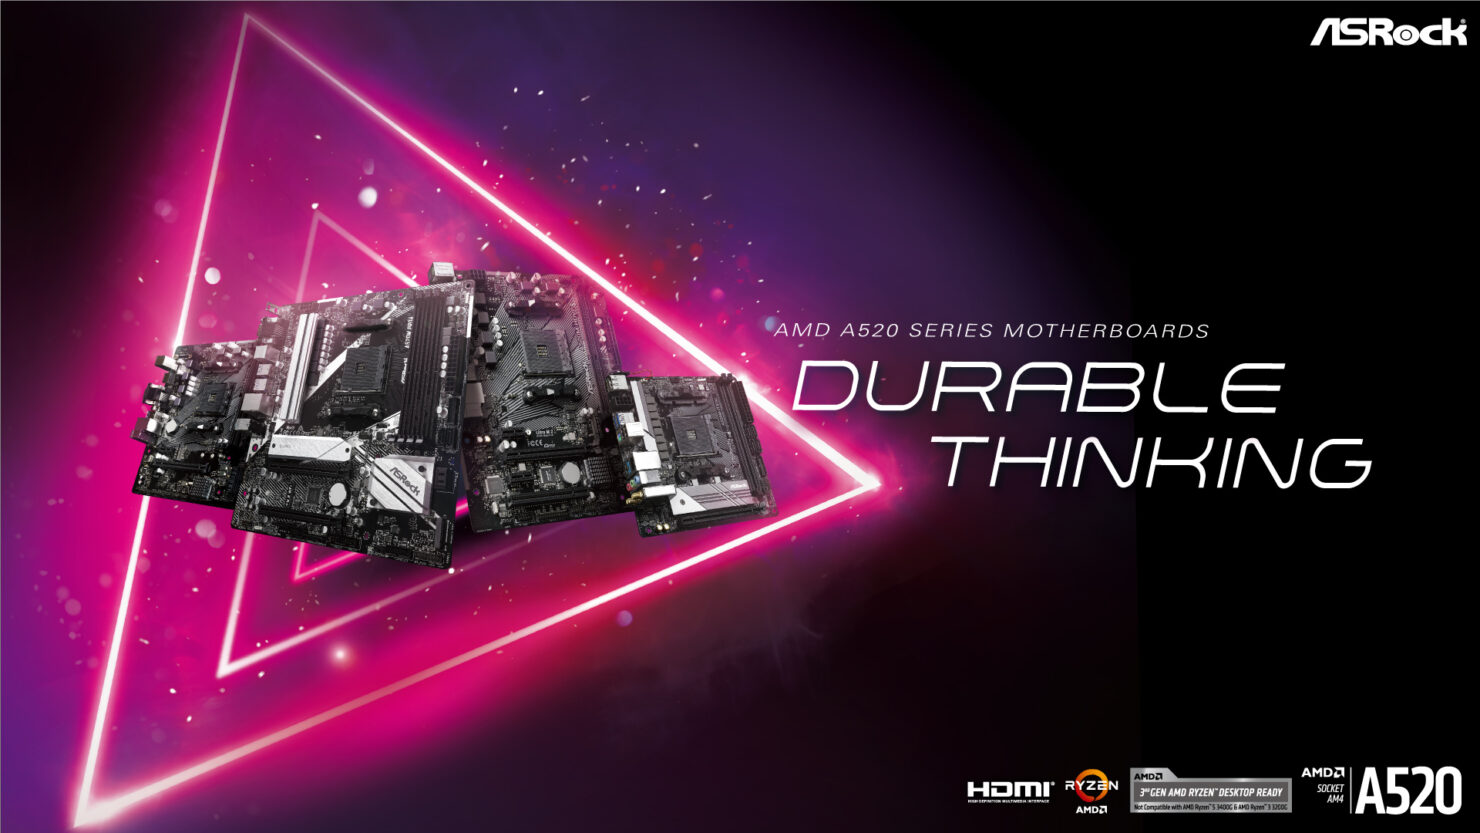 20200818-asrock-launches-amd-a520-motherboards-with-best-in-class-featur-_2